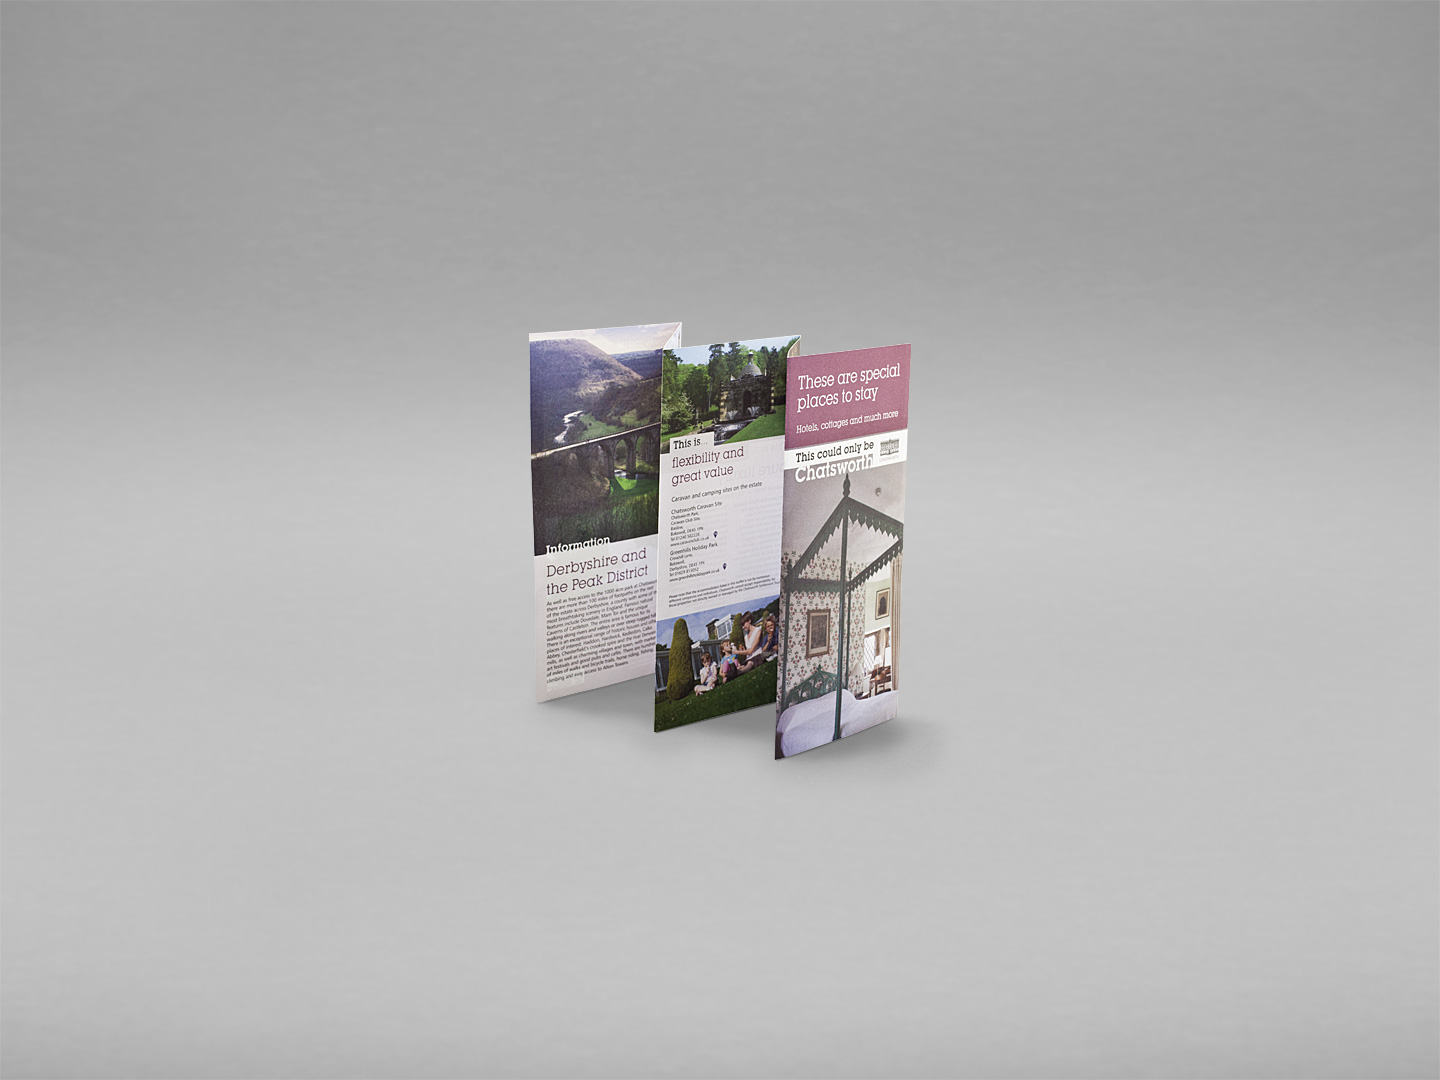 chatsworth house, derbyshire, holiday accomodation leaflet, print design bakewell